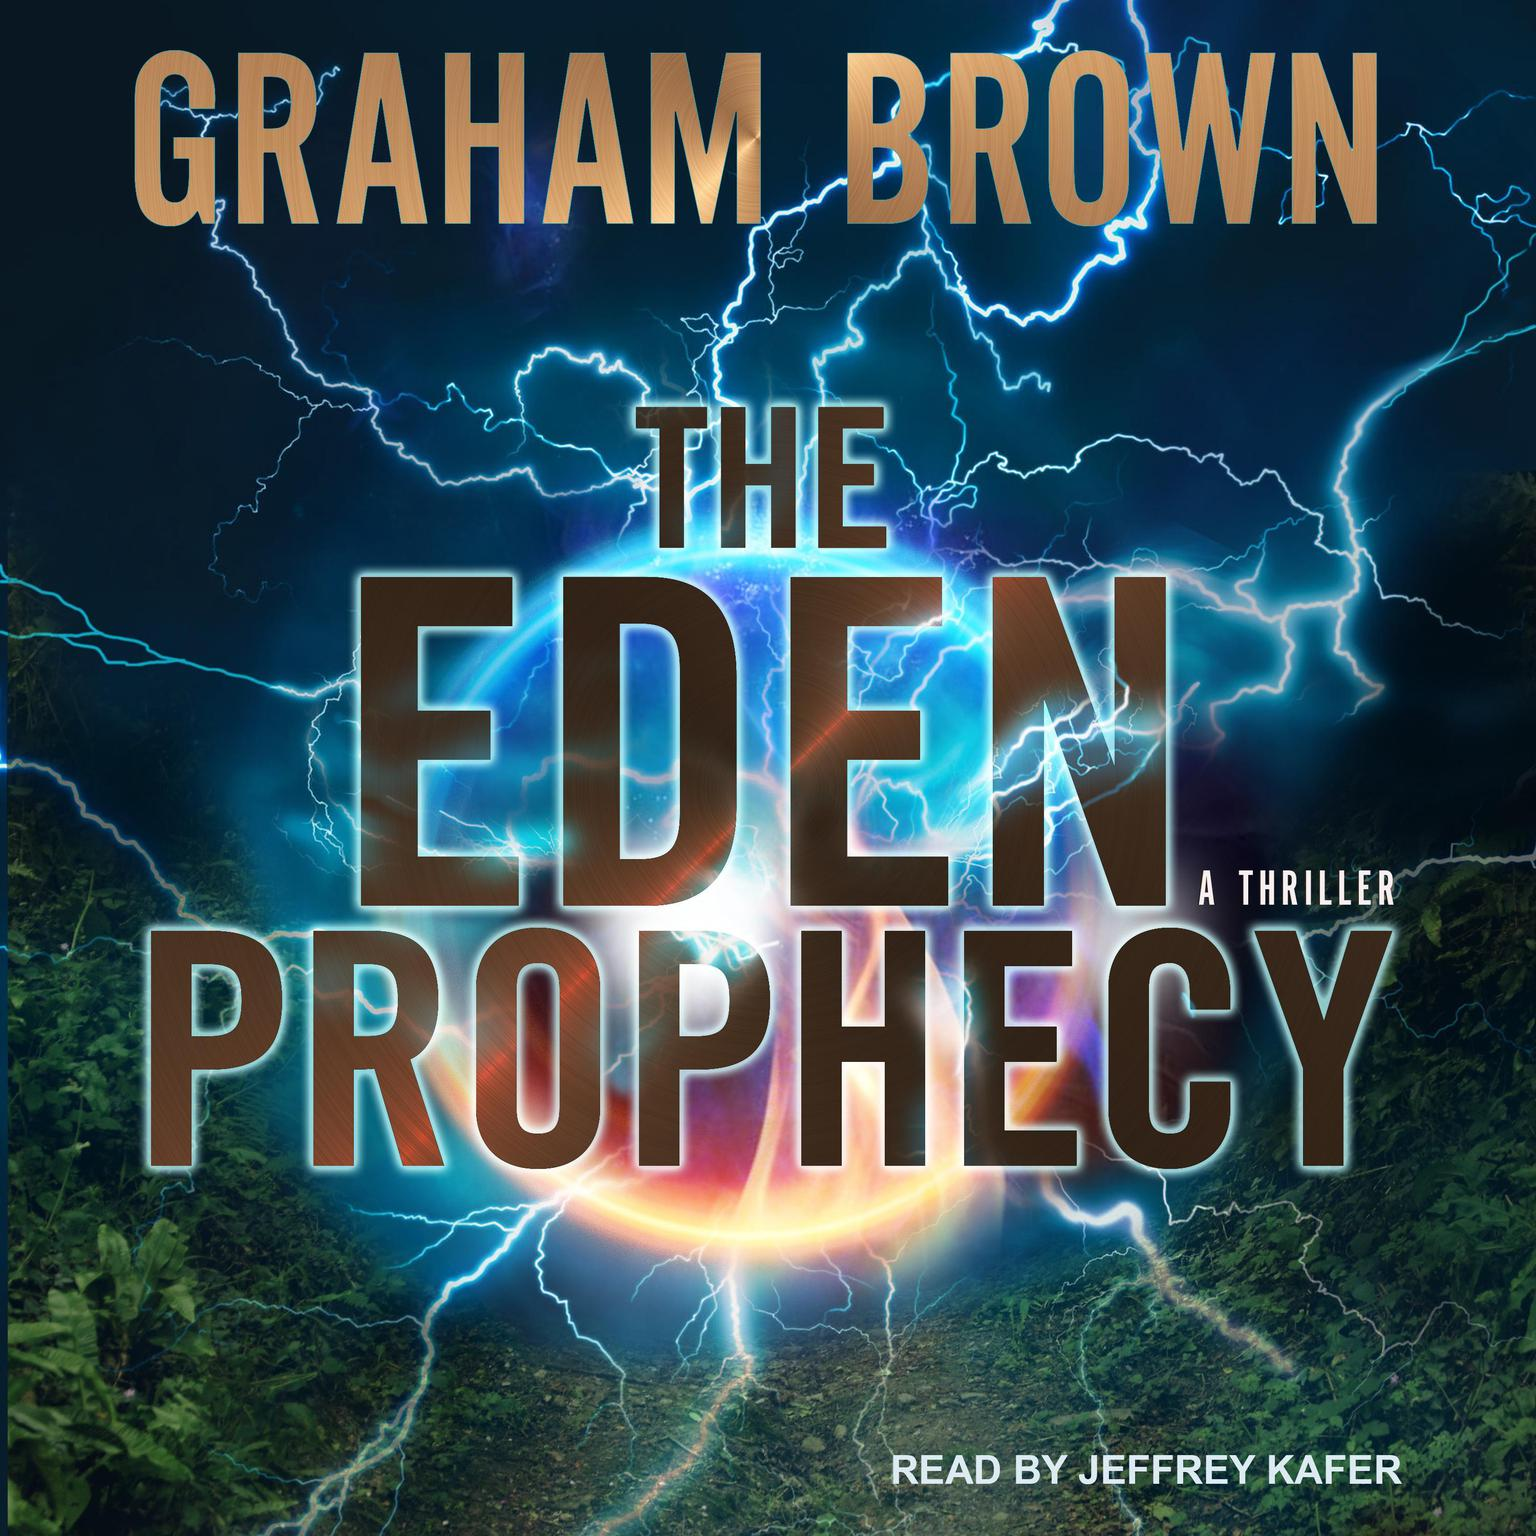 Printable The Eden Prophecy Audiobook Cover Art